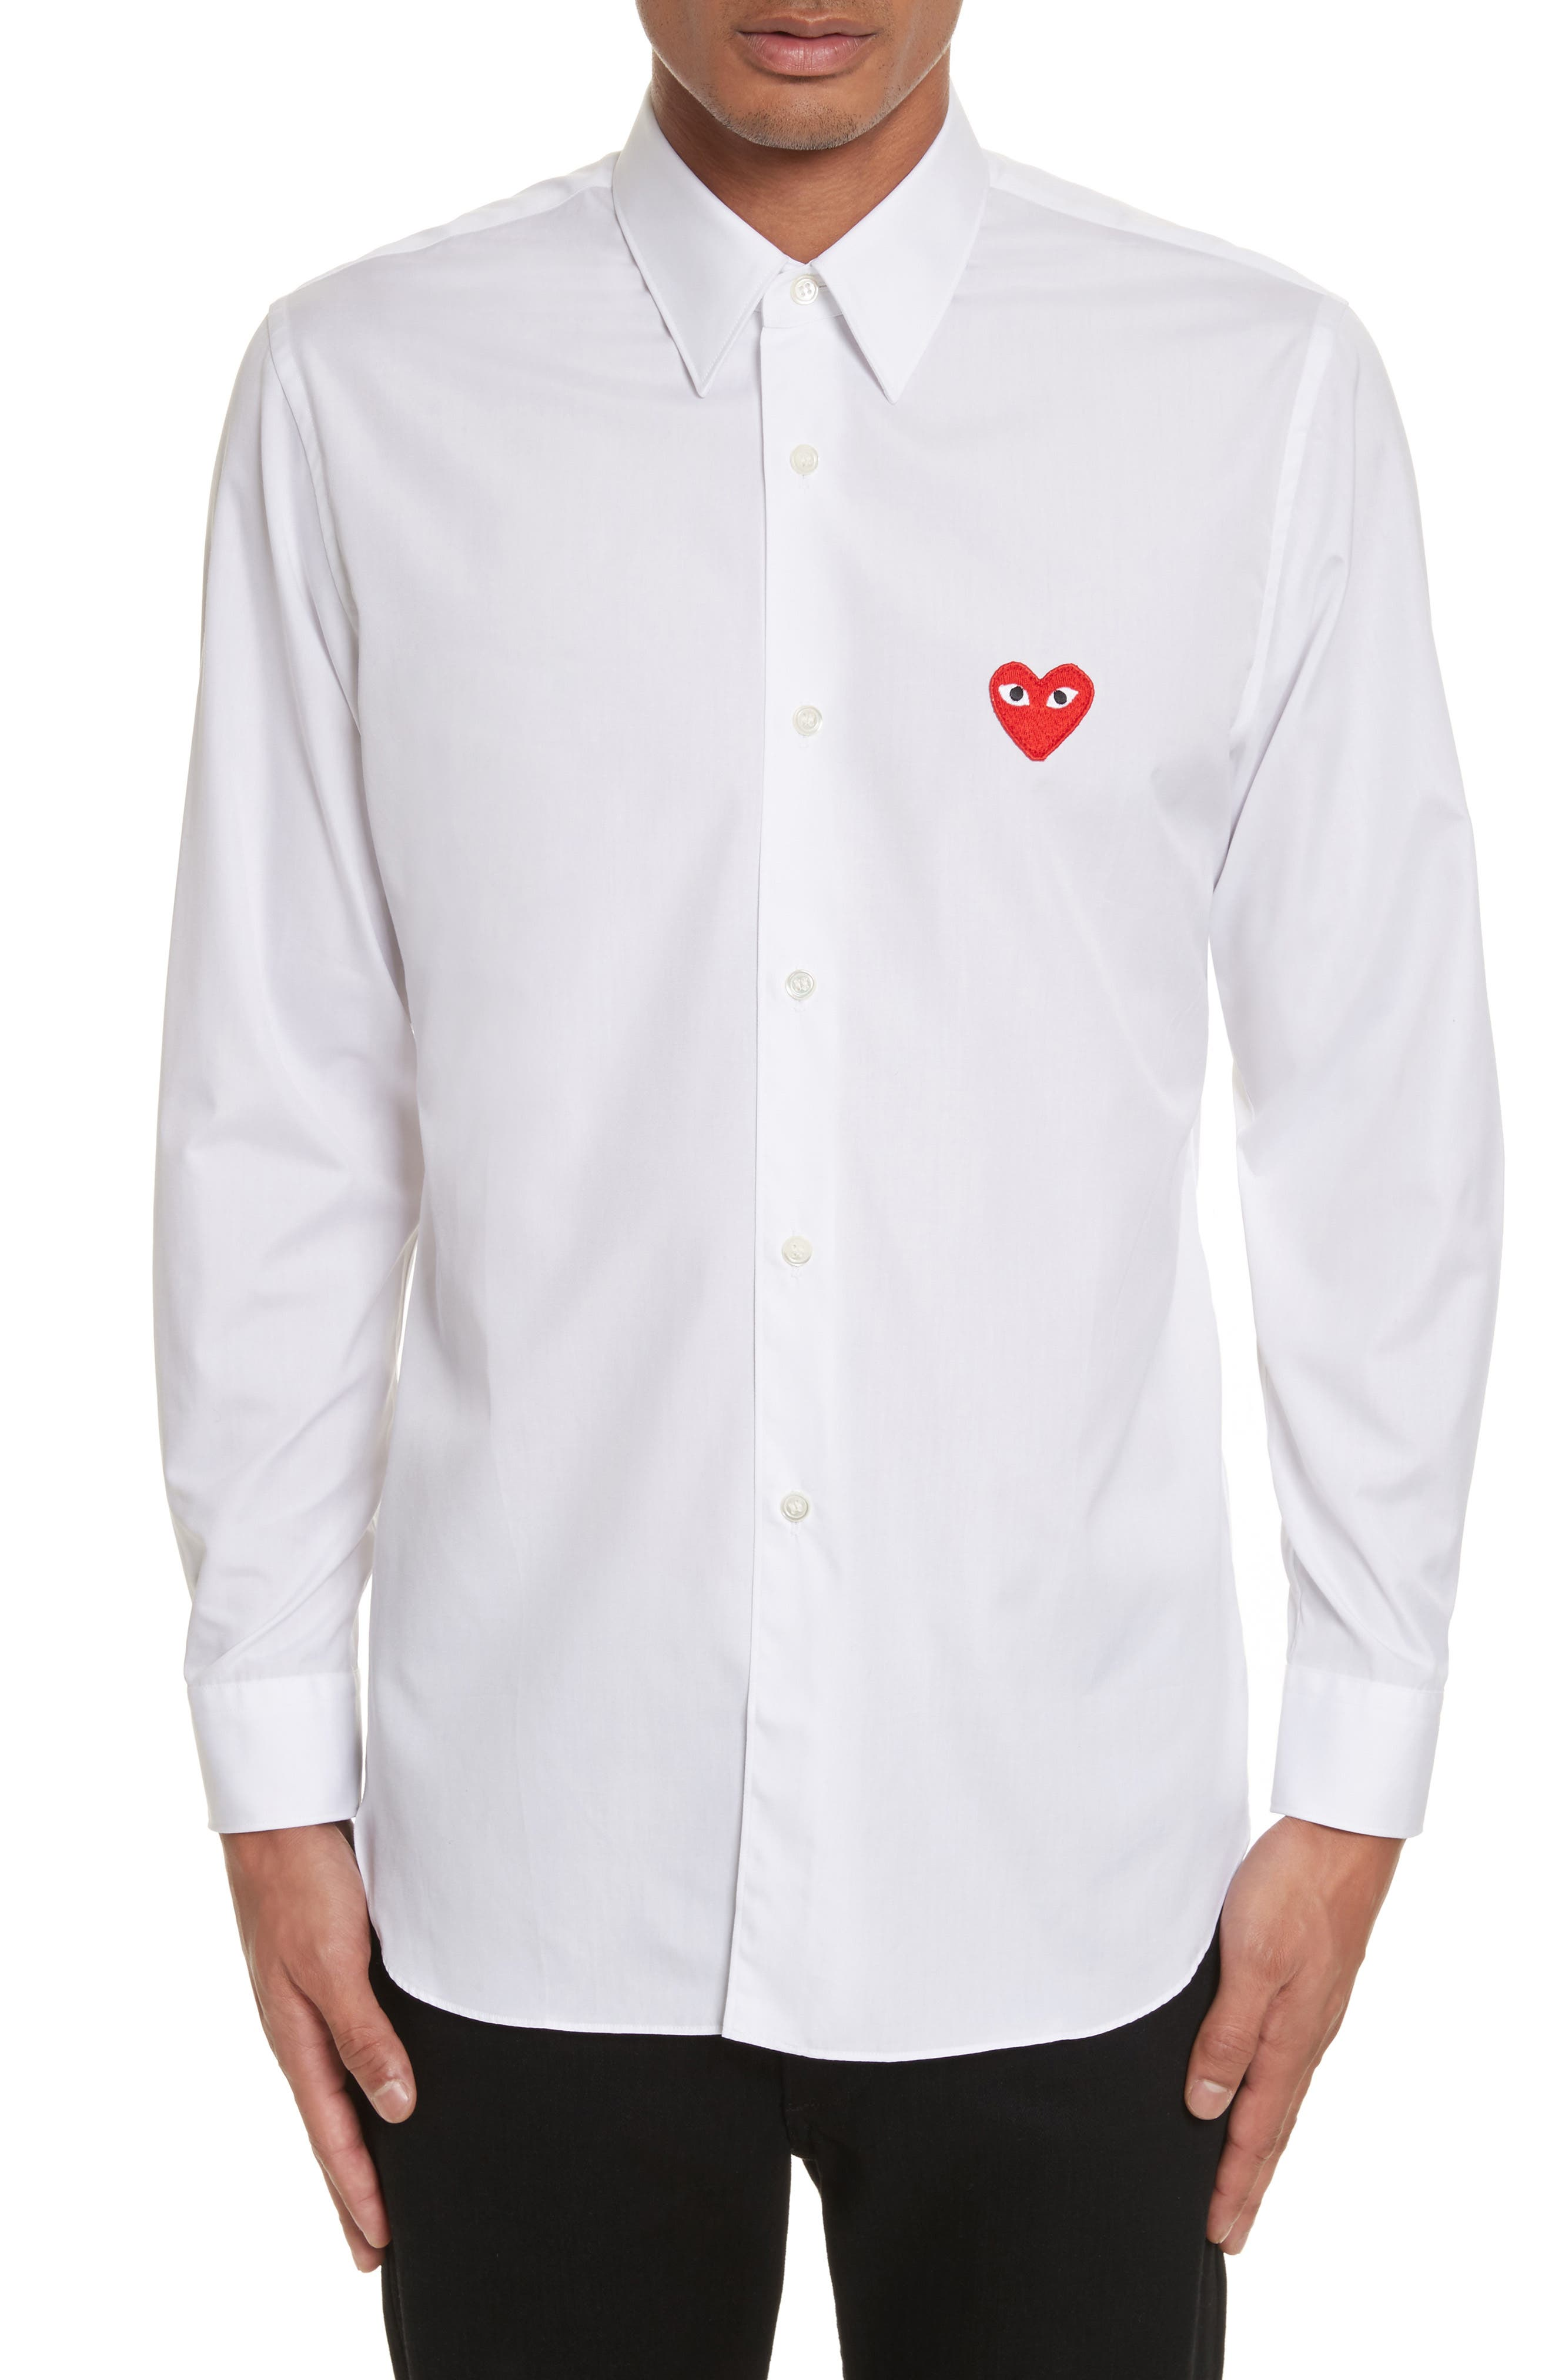 White Designer Shirts for Men: Oxford, Sport & Chambray | Nordstrom